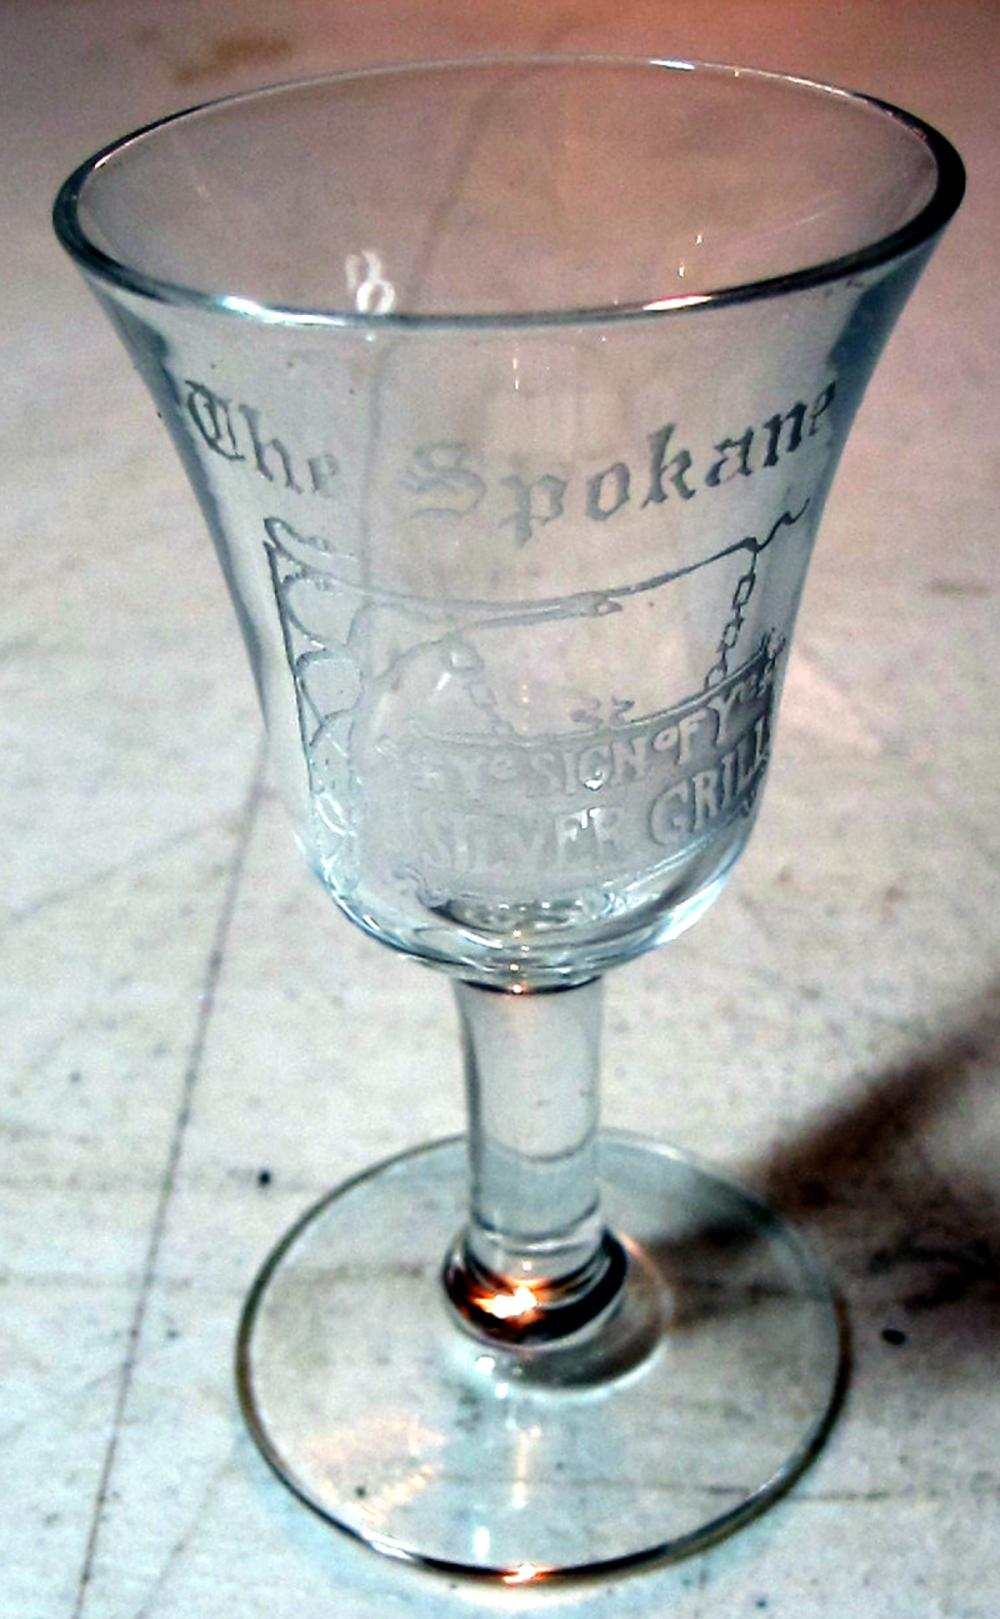 Lot 30: RARE OLD SPOKANE HOTEL YE SIGN OF YE SILVER GRILL PRE-PRO ETCHED SHOT GLASS